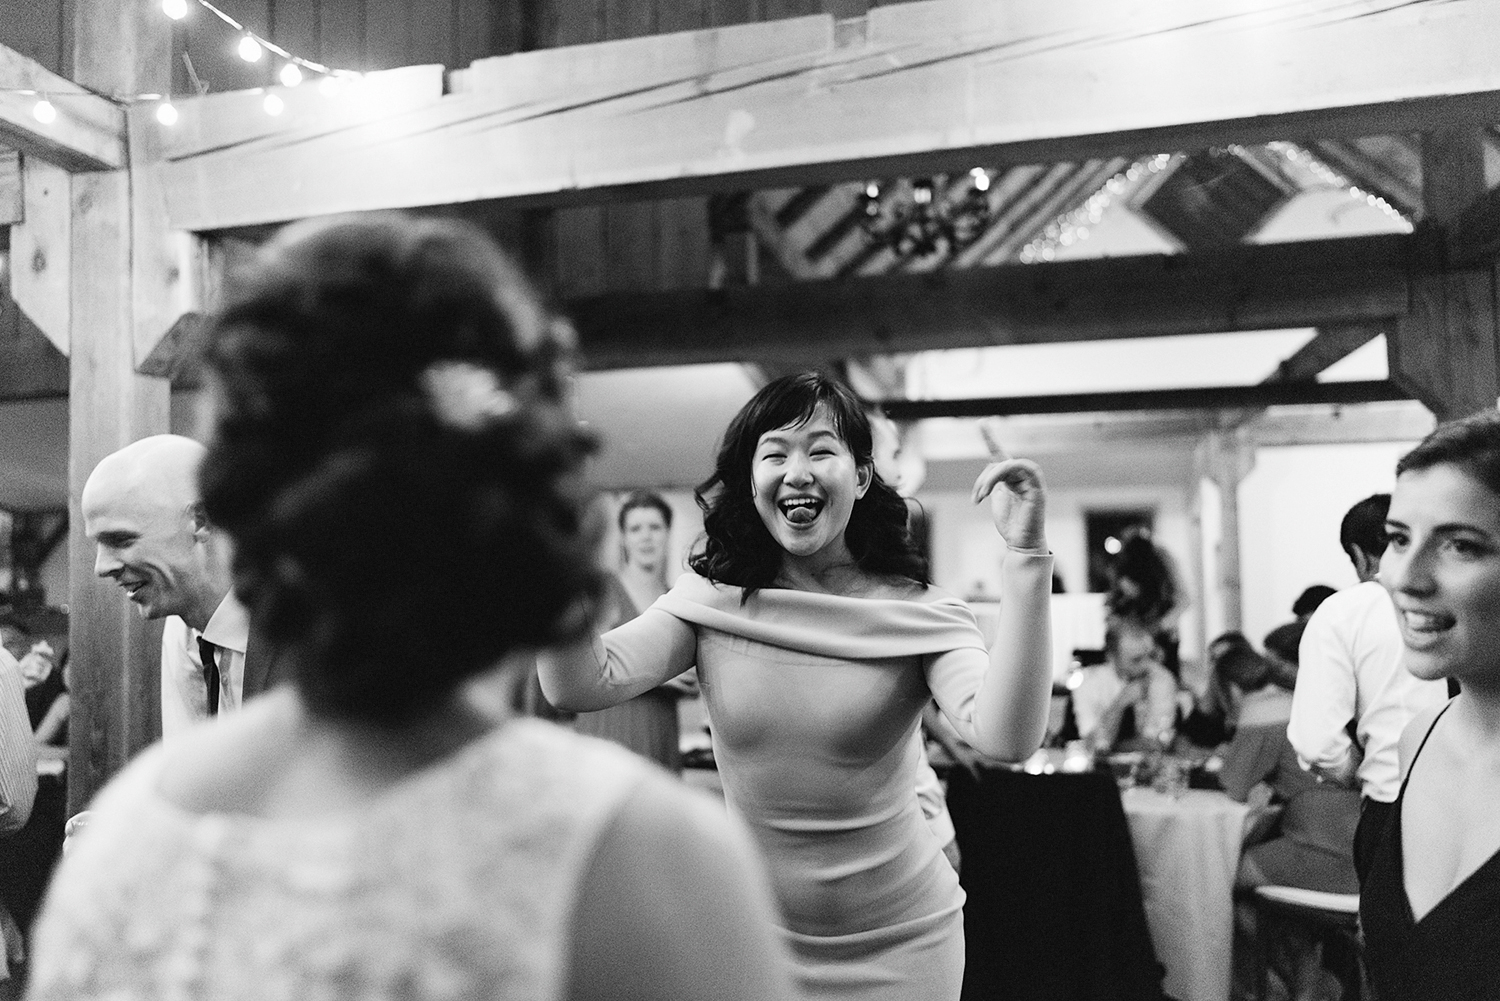 bw-candid-cute-dancing-in-barn-with-string-lights-toronto's-best-analog-documentary-wedding-photographers-candid-photography-london-ontario-wedding-inspiration.jpg